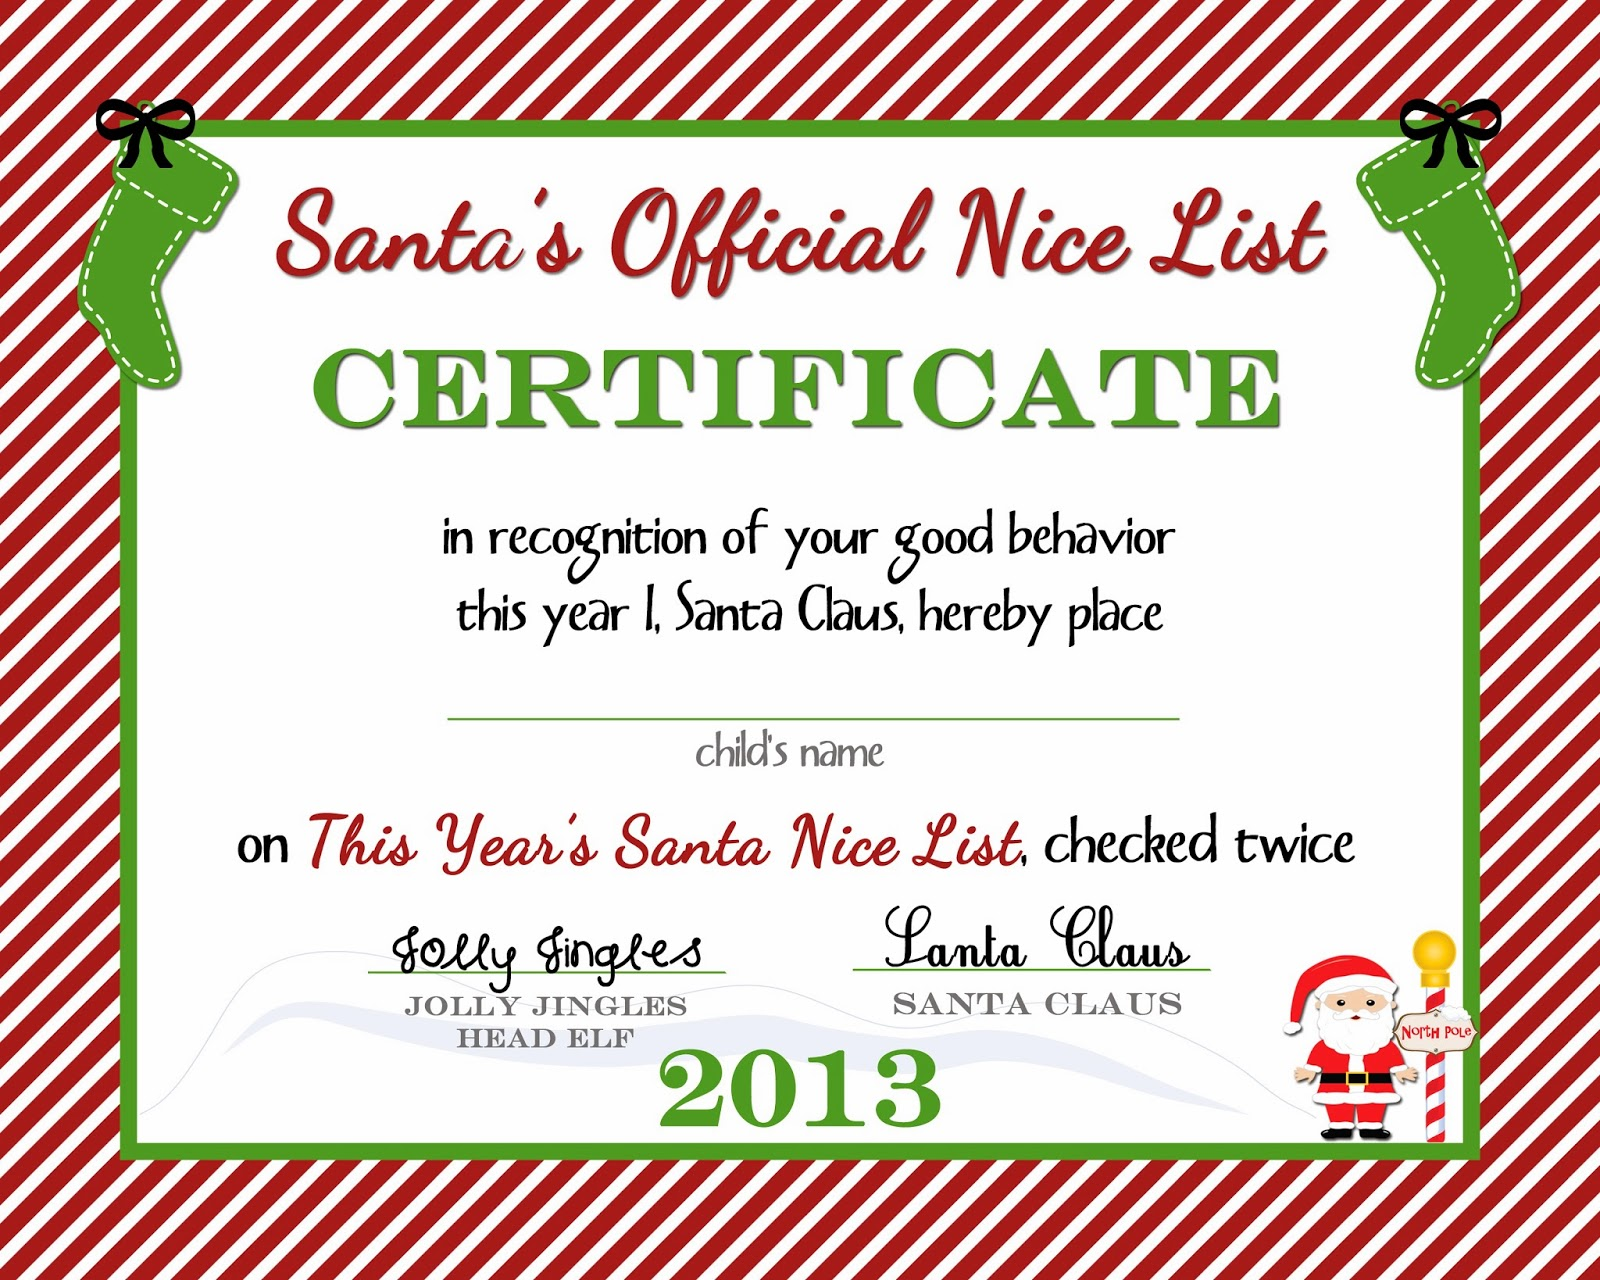 printable nice list certificate from the north pole a dropbox com sh 2shf8oe7y78ob6s asbsuhqjay